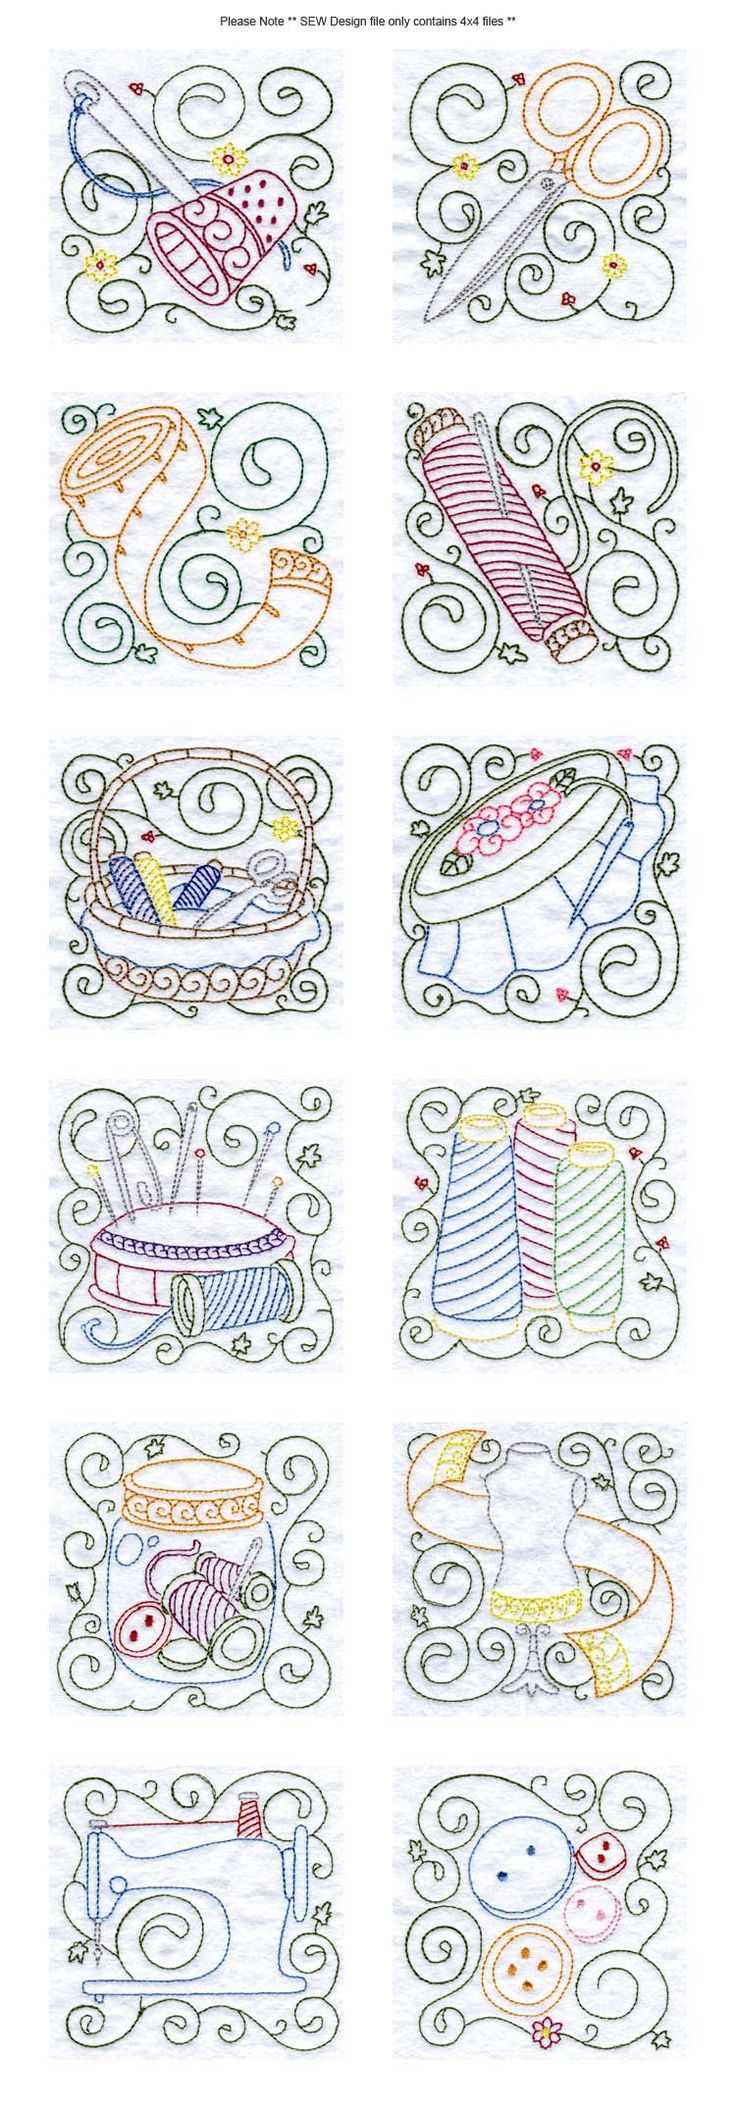 FREE SEW EMBROIDERY DESIGNS